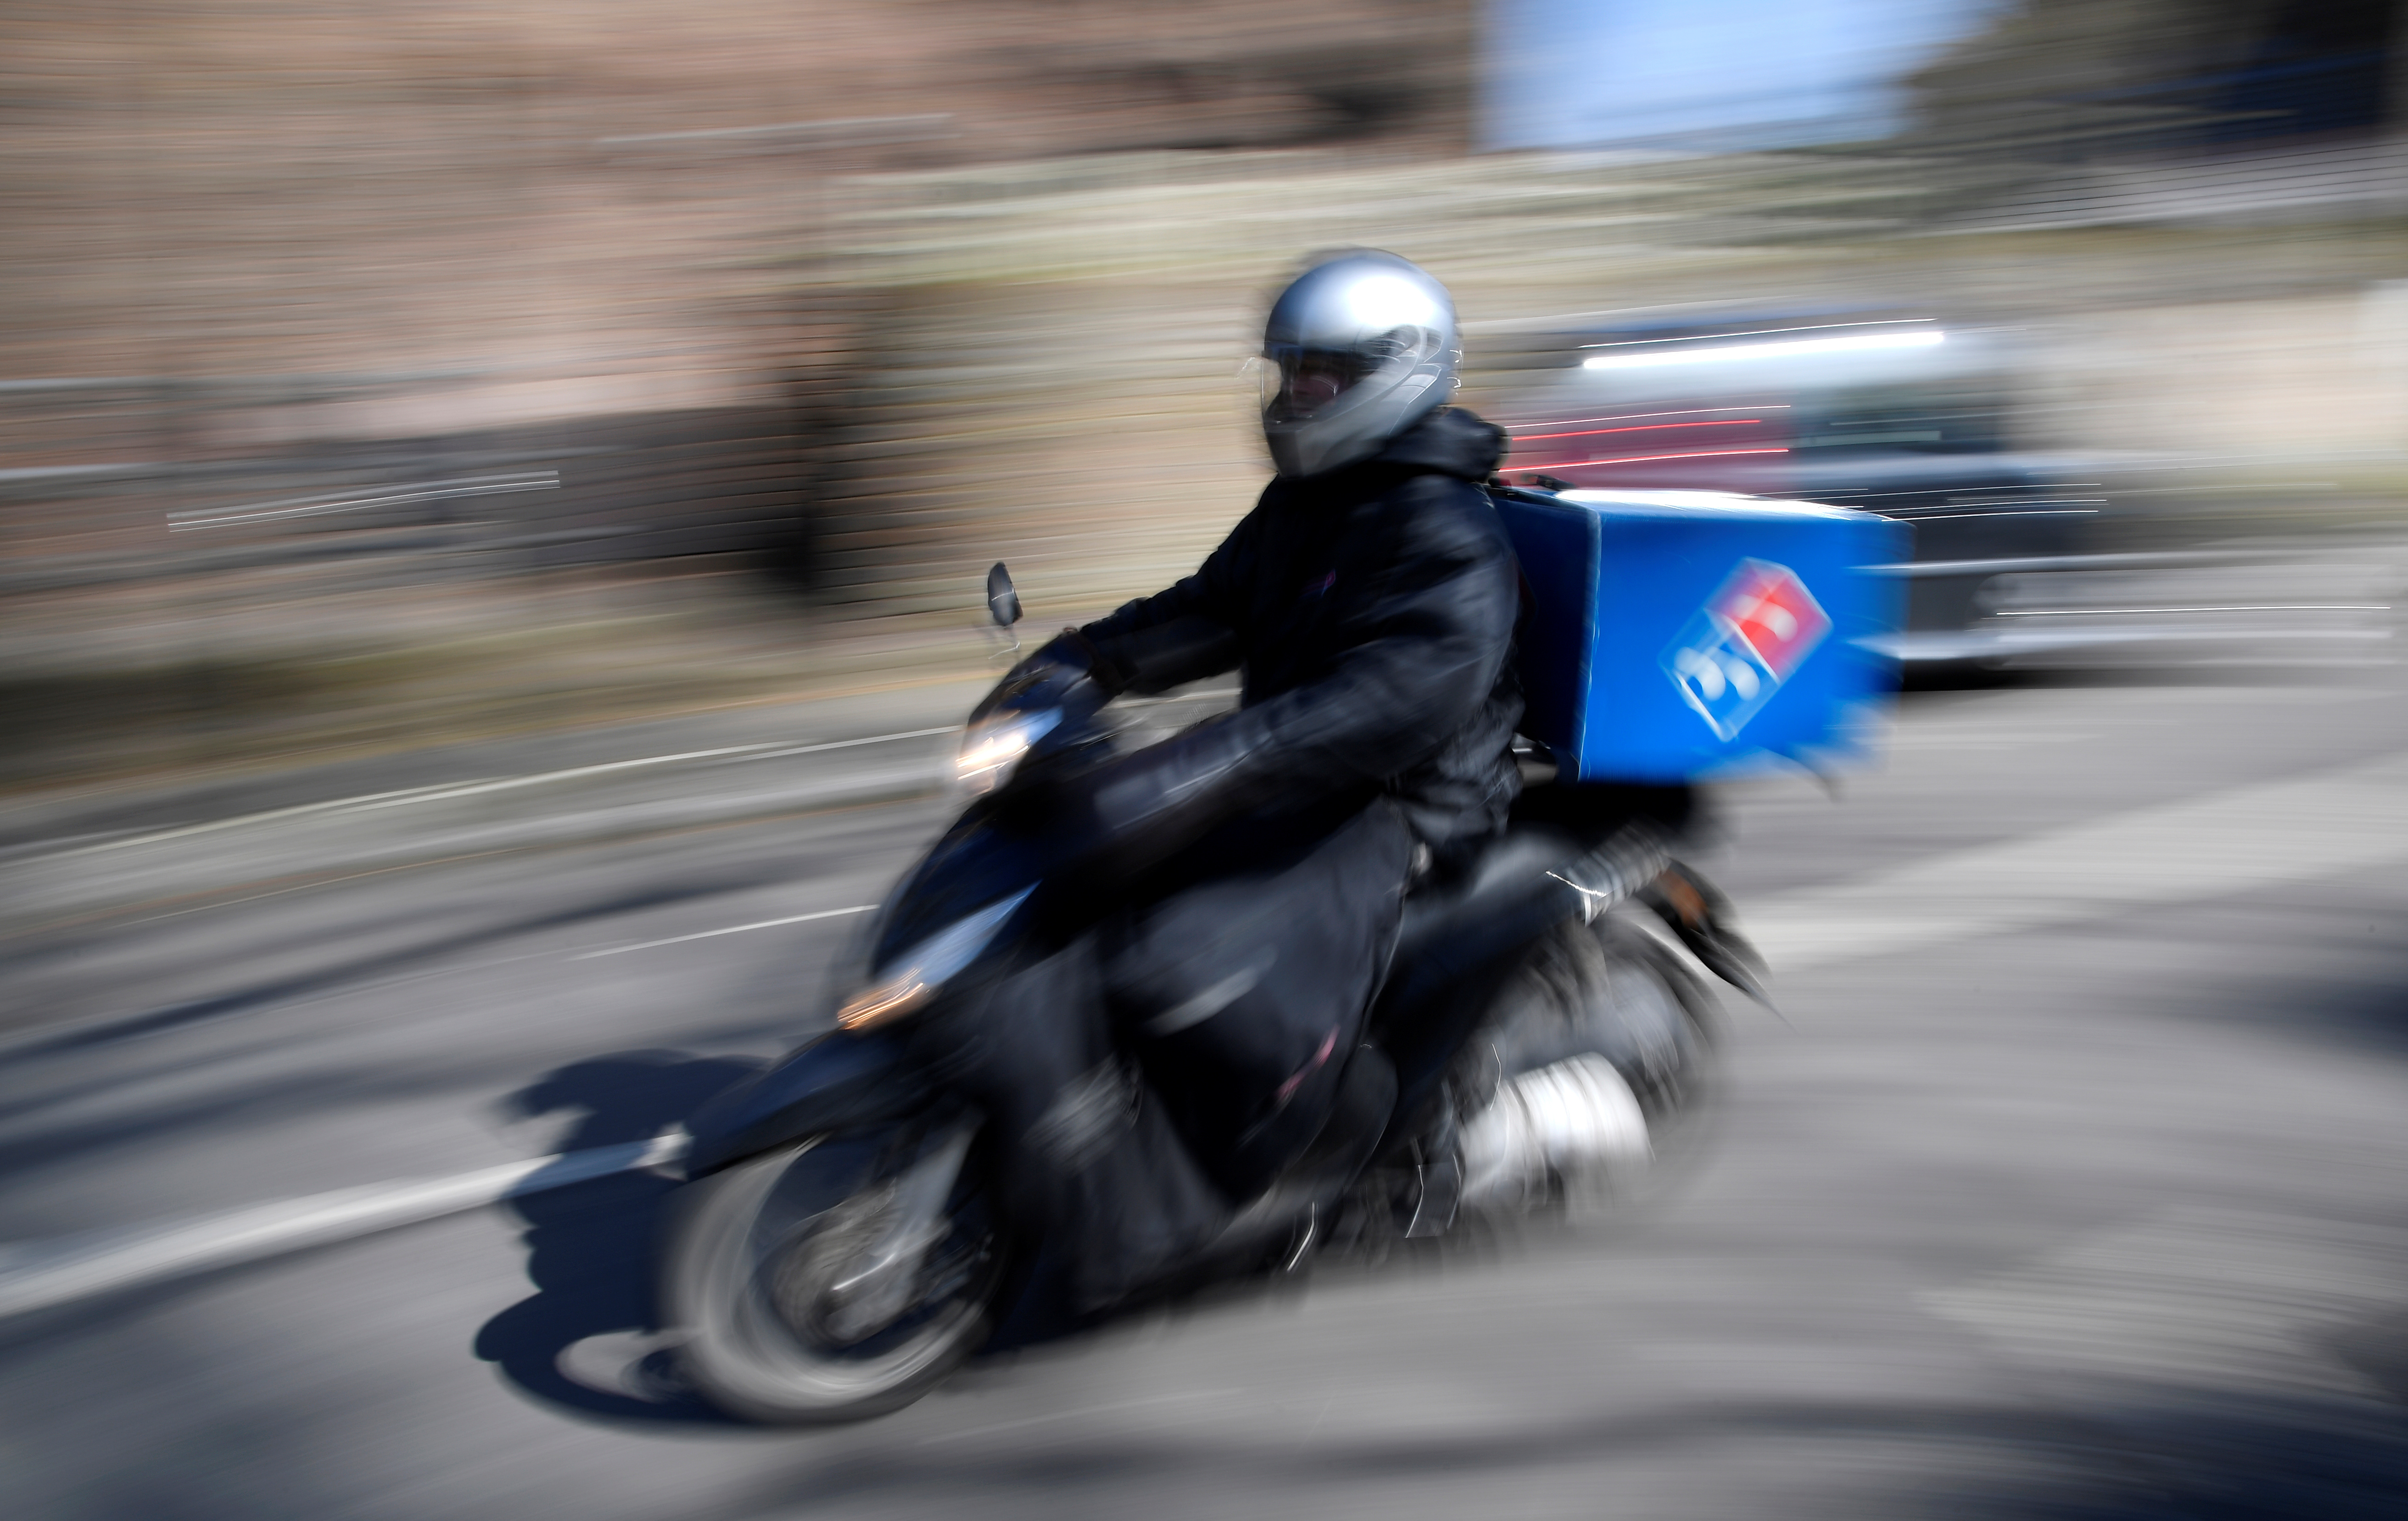 A Dominoes pizza delivery driver rides a motorbike in a residential street in West London as the spread of the coronavirus disease (COVID-19) continues, in London, Britain, March 24, 2020. REUTERS/Toby Melville/File photo